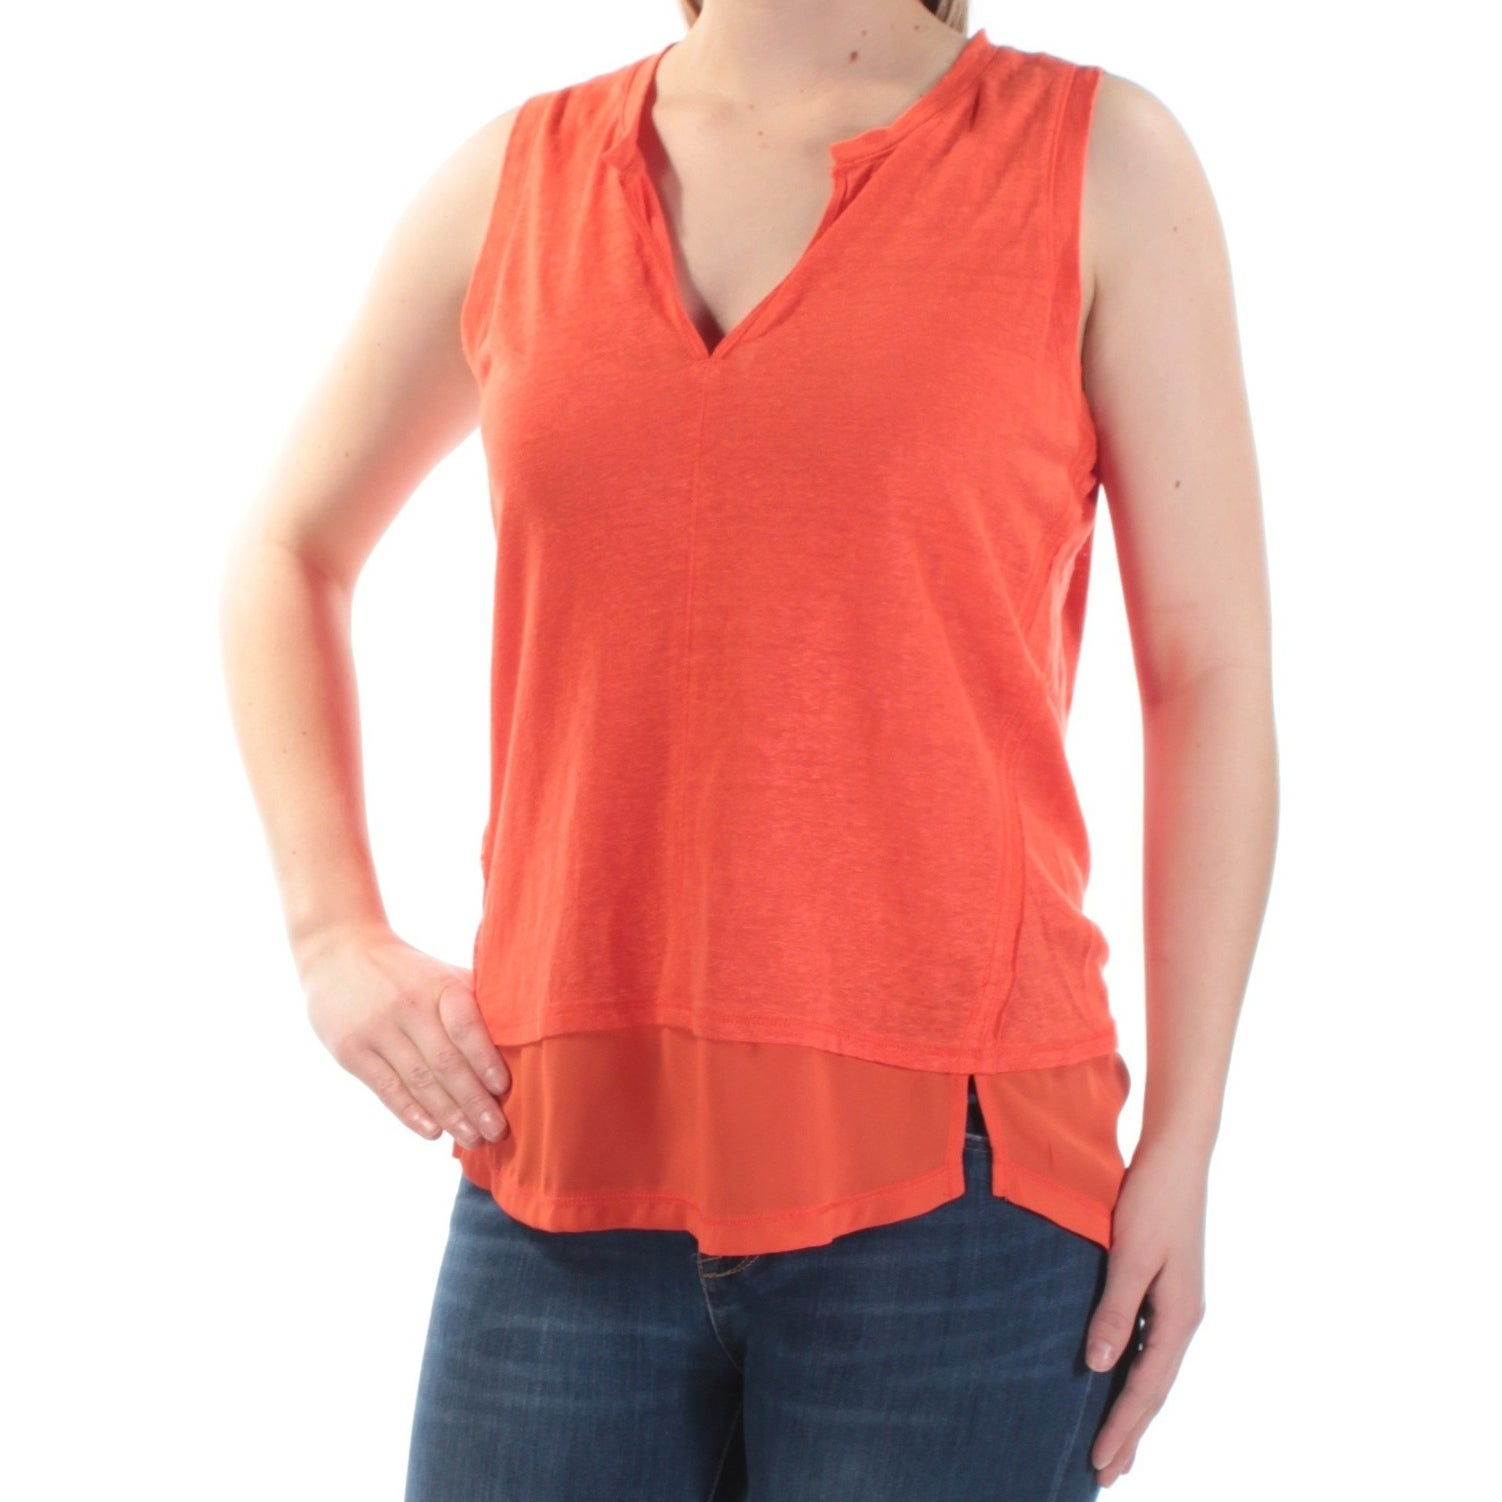 fbe0f05154e2 Linen Tops | Find Great Women's Clothing Deals Shopping at Overstock